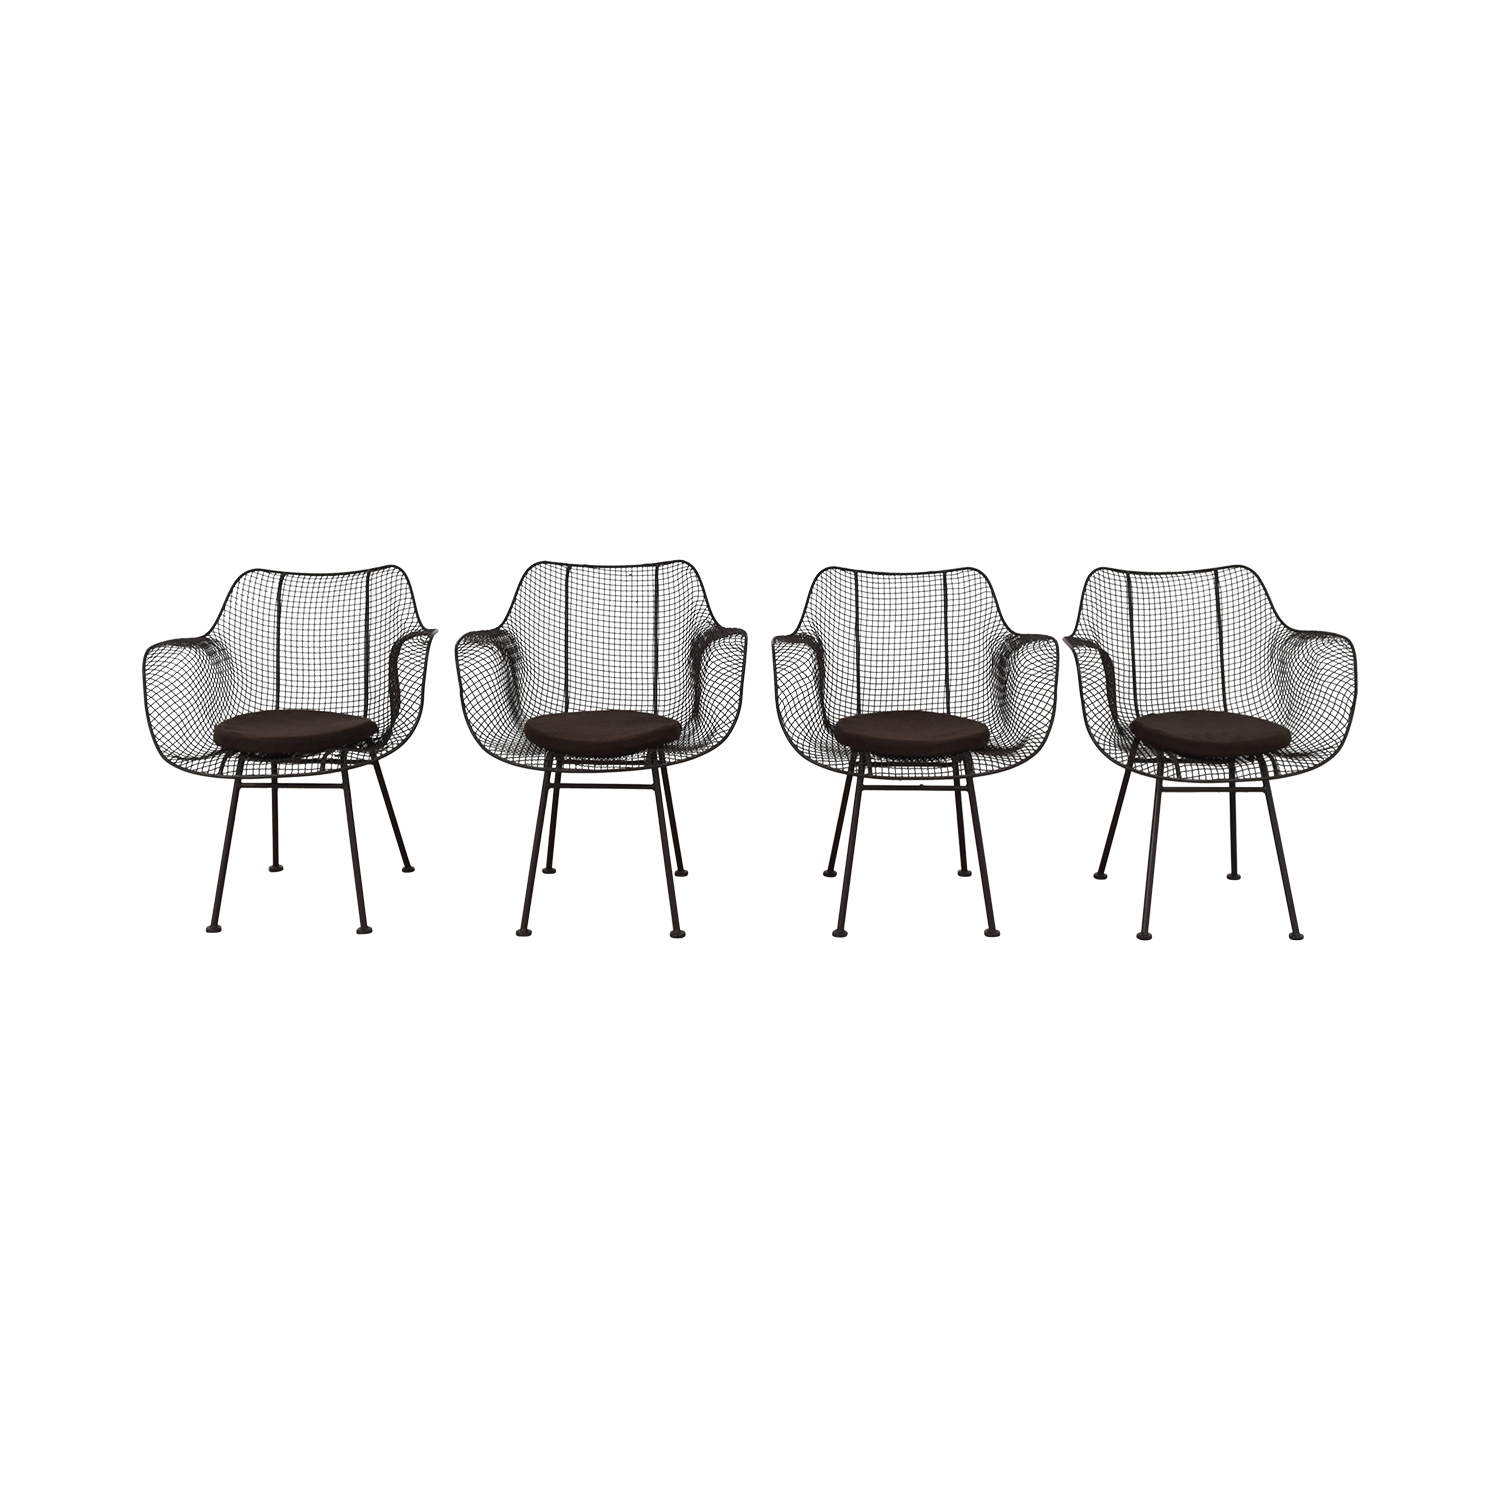 68% OFF   Restoration Hardware Restoration Hardware Metal Tub Dining Chairs  / Chairs